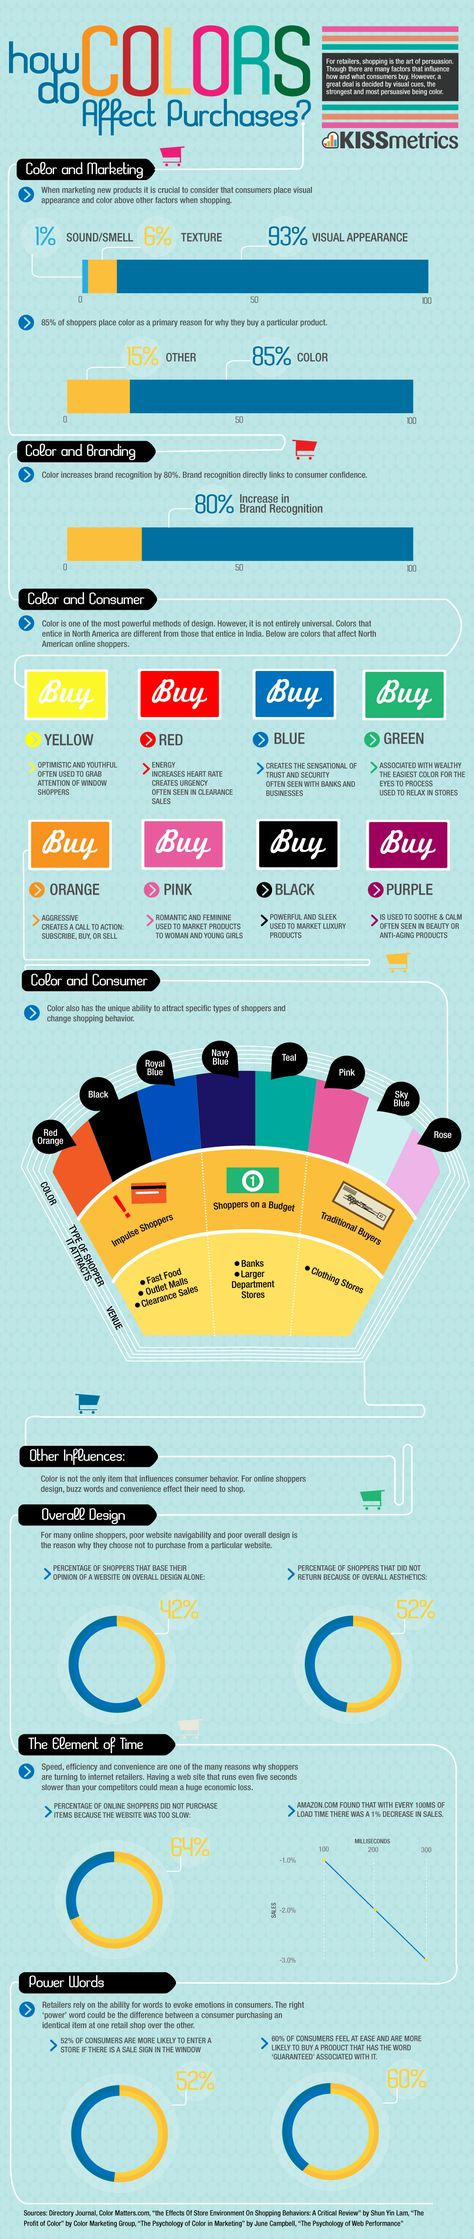 How Does Color Factor into Your Purchases?